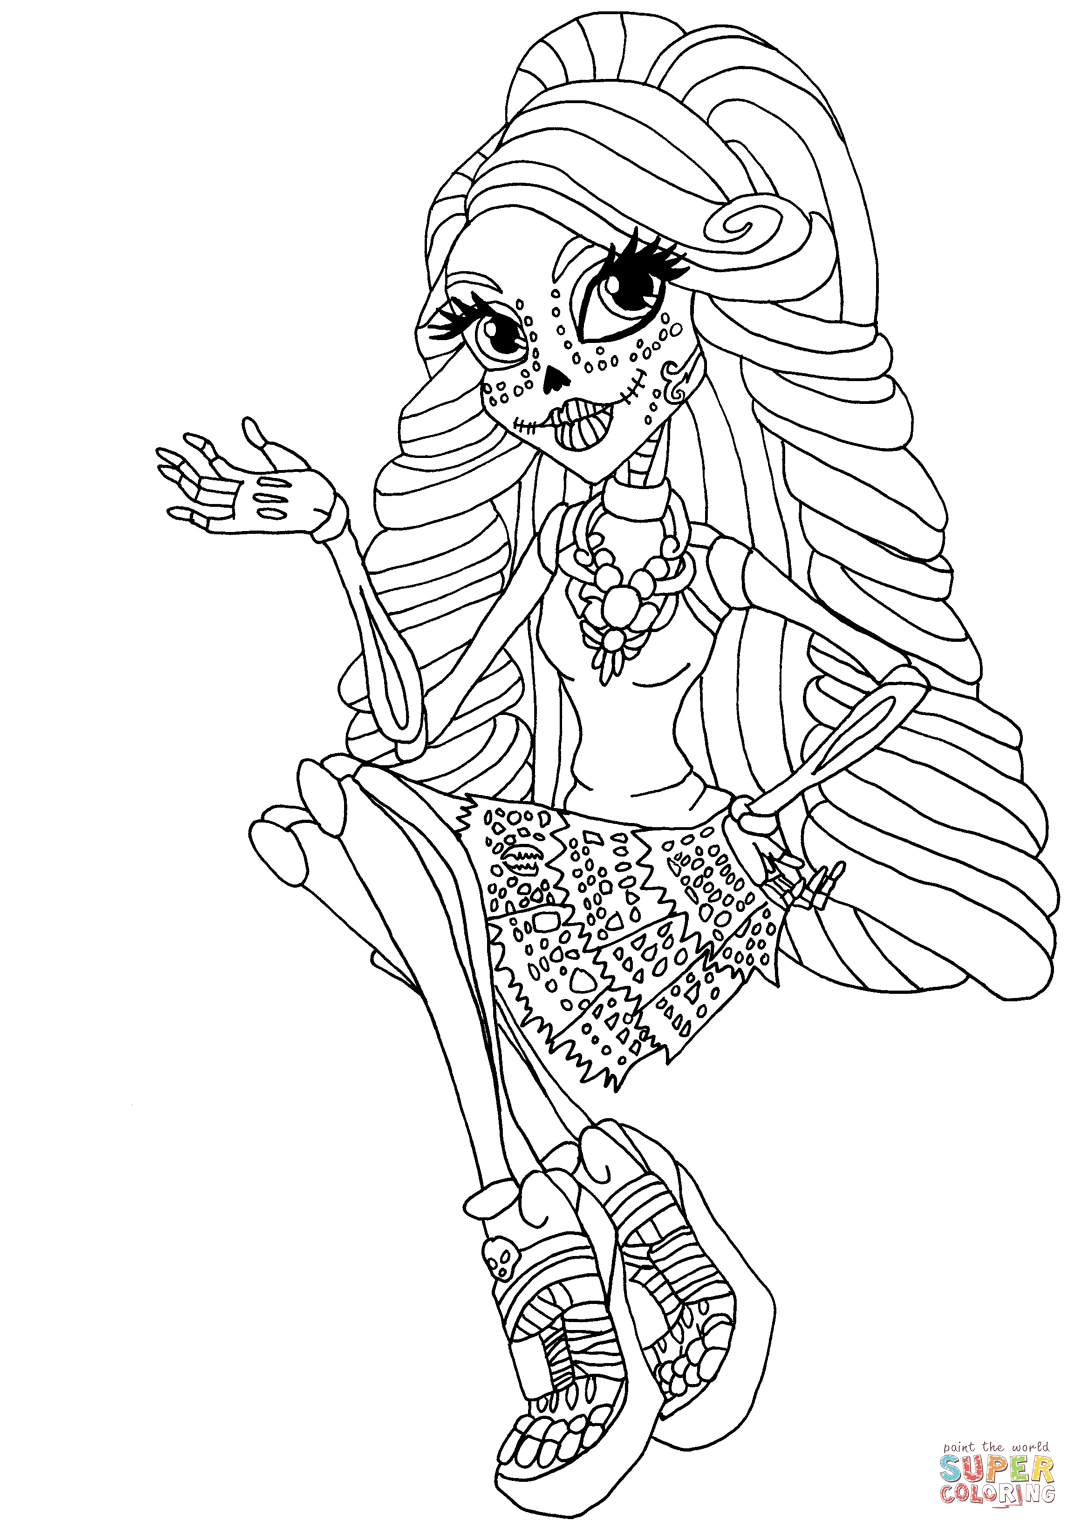 coloring sheet graffiti coloring pages cool skelita coloring page free printable coloring pages graffiti pages sheet coloring coloring